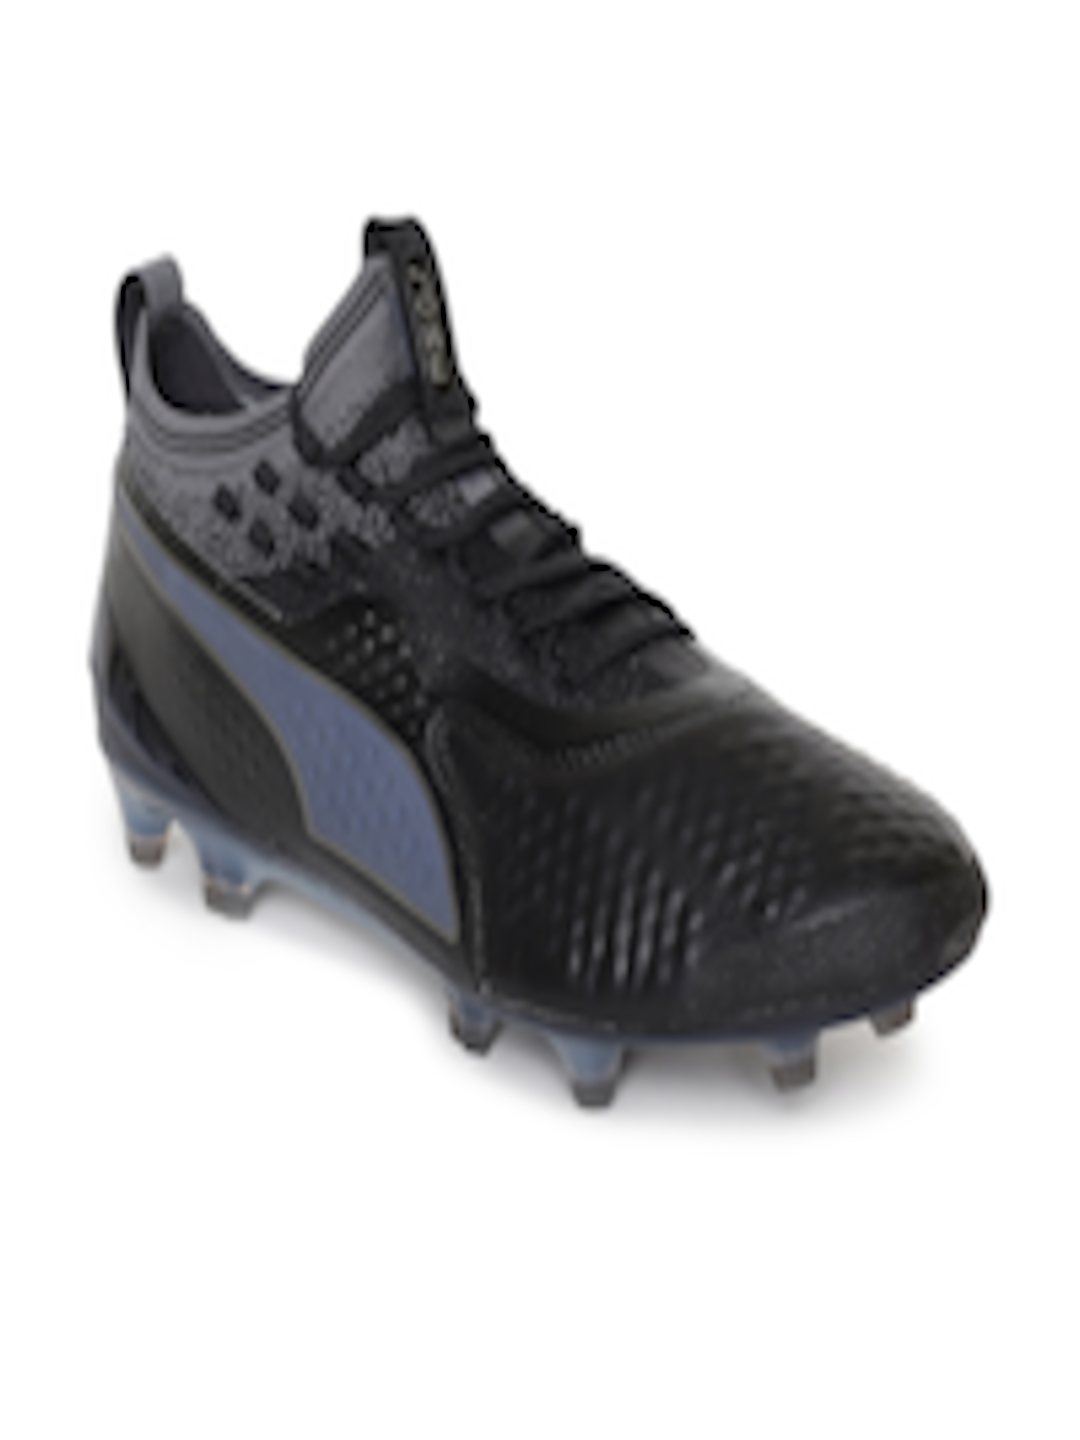 2160280ae3d9 Buy Puma Men Black Solid PUMA ONE 1 Lth FG AG Leather Football Shoes -  Sports Shoes for Men 7188752